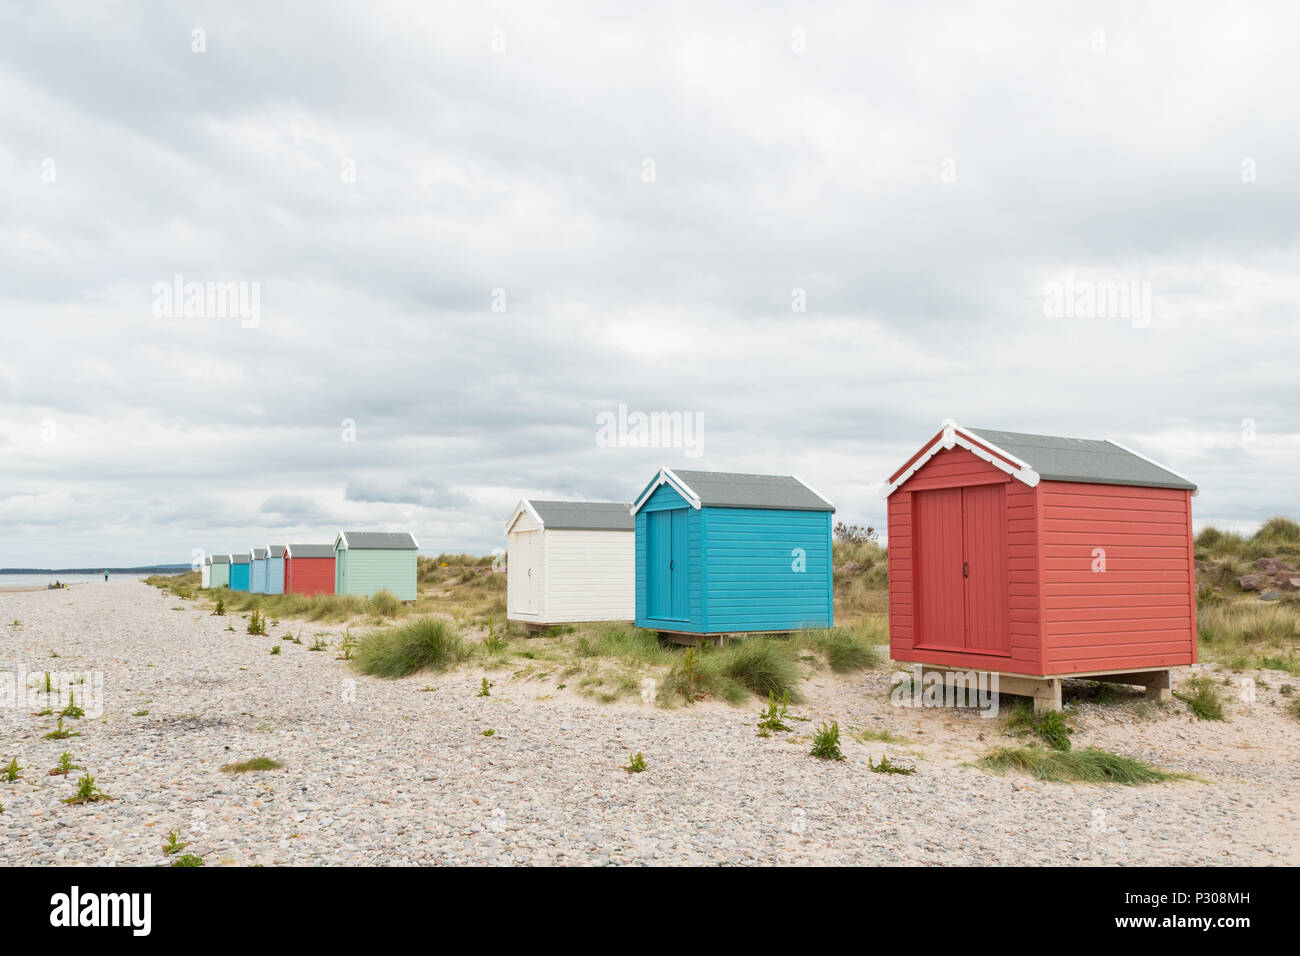 Beach Huts on Scottish beach, at Burghead Bay near Findhorn, Moray Firth, Scotland, UK - Stock Image